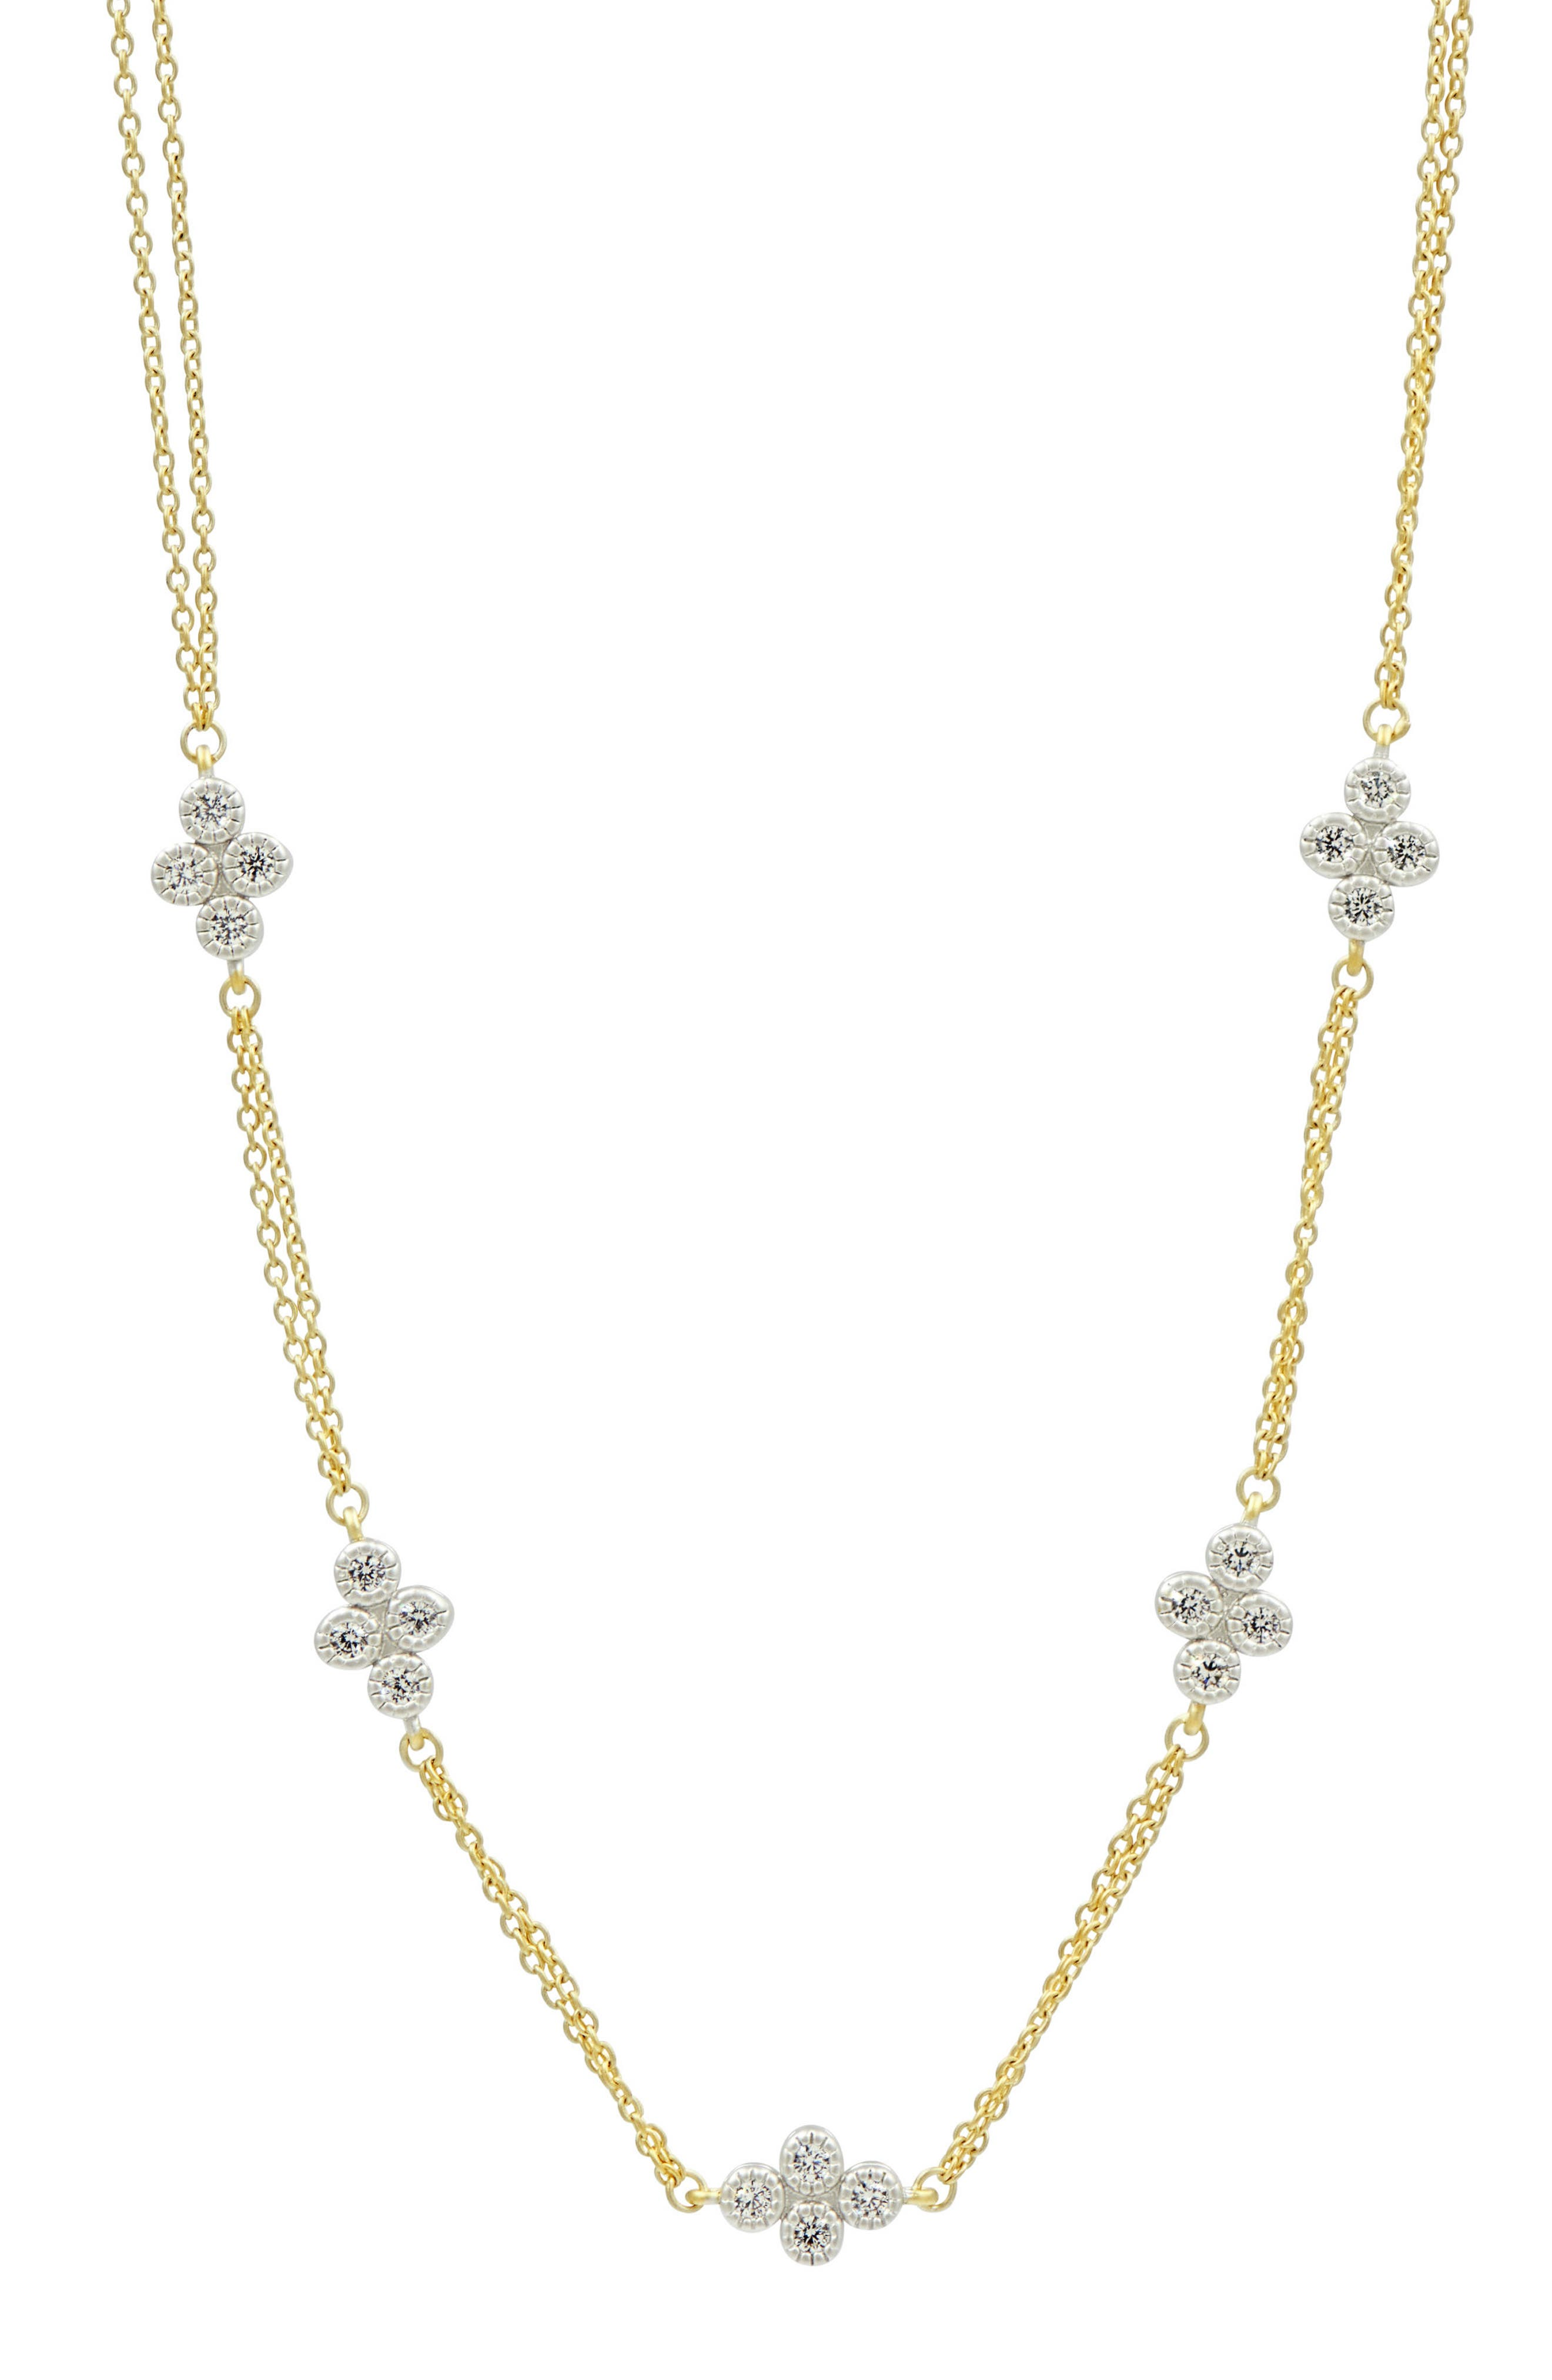 Visionary Fusion Strand Necklace,                         Main,                         color, Gold/ Silver